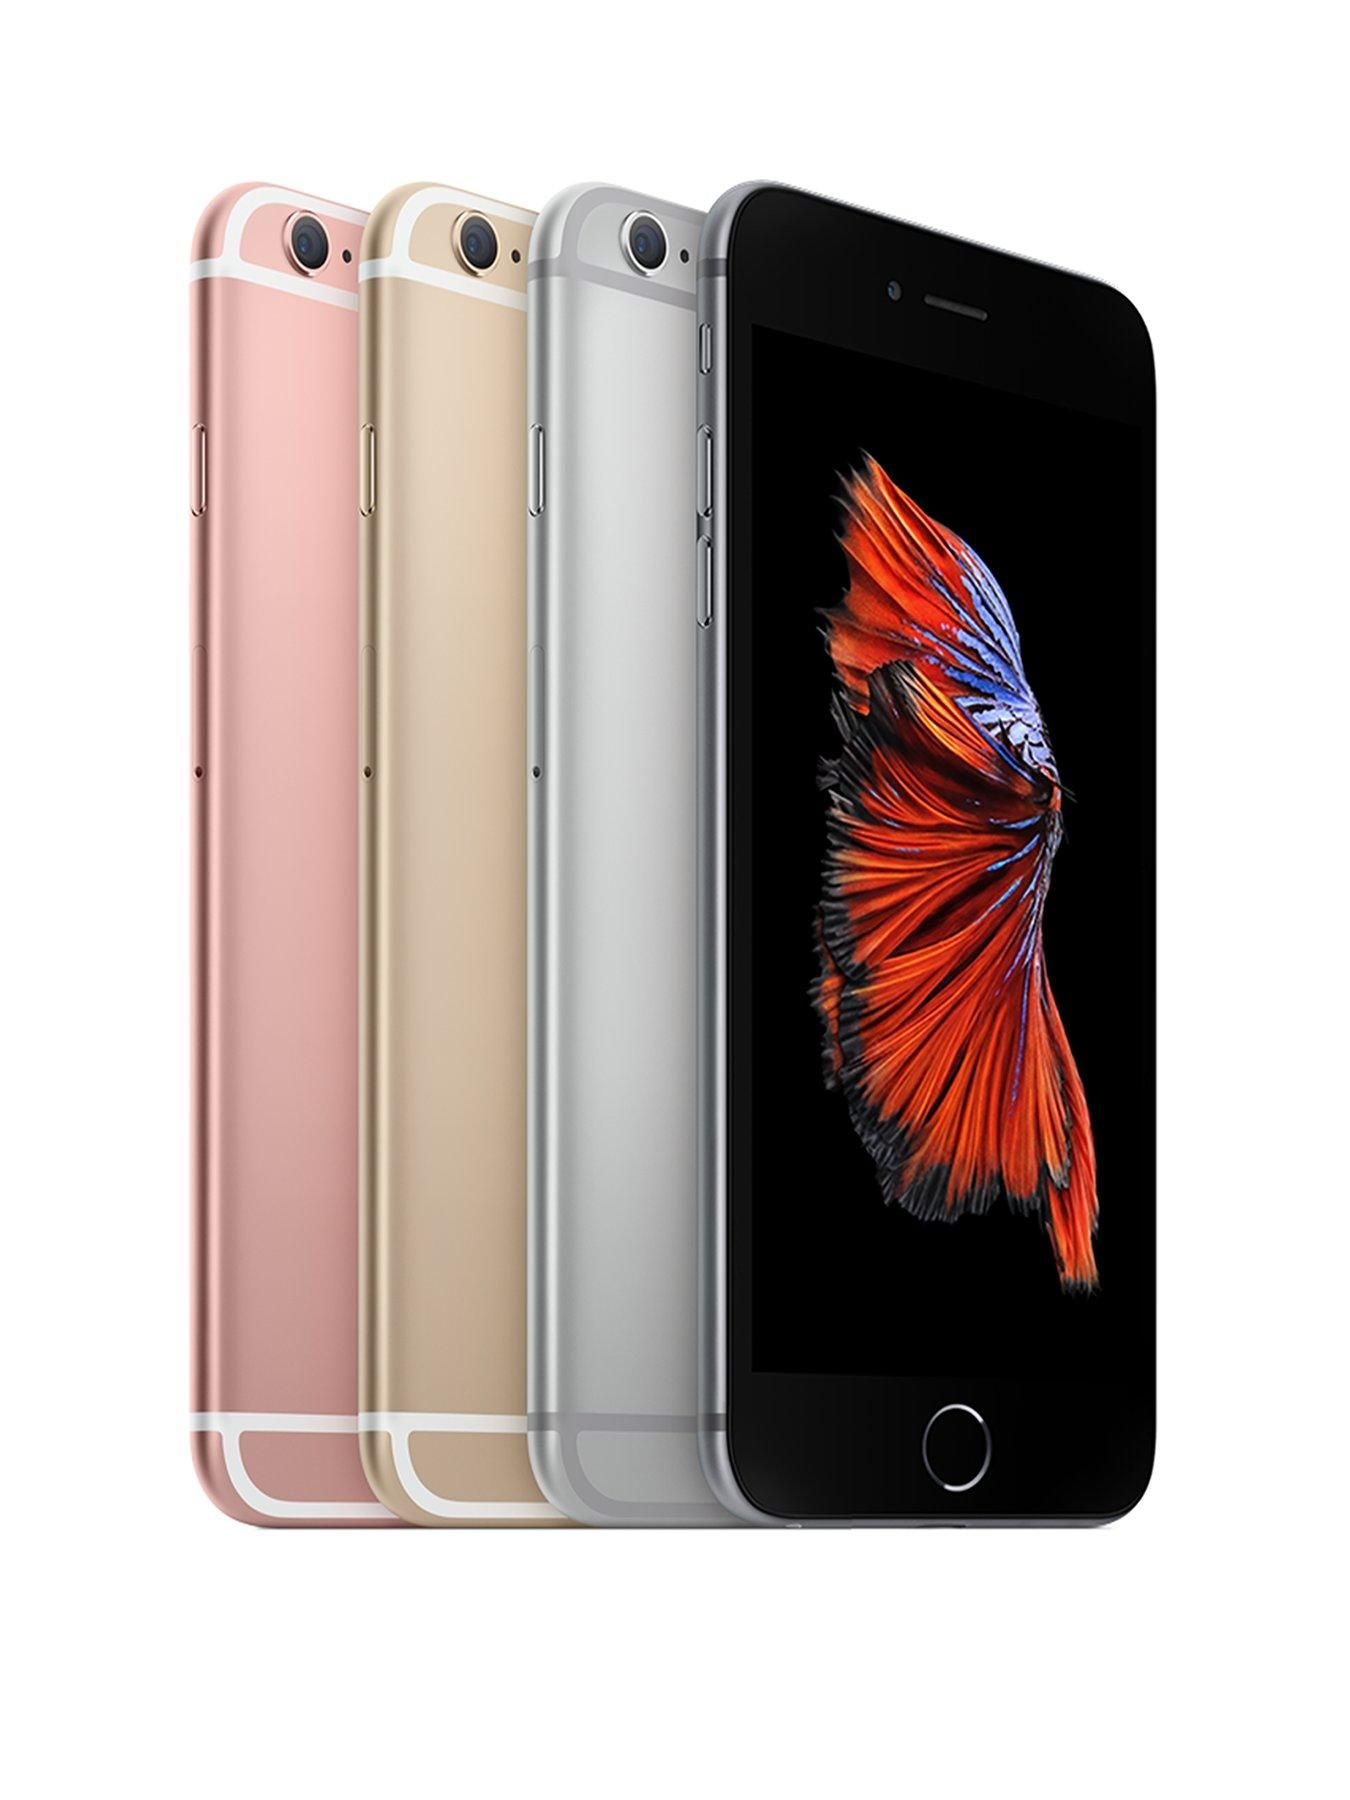 iPhone 6s Plus, 32Gb in 2020 Iphone, Apple iphone 6s